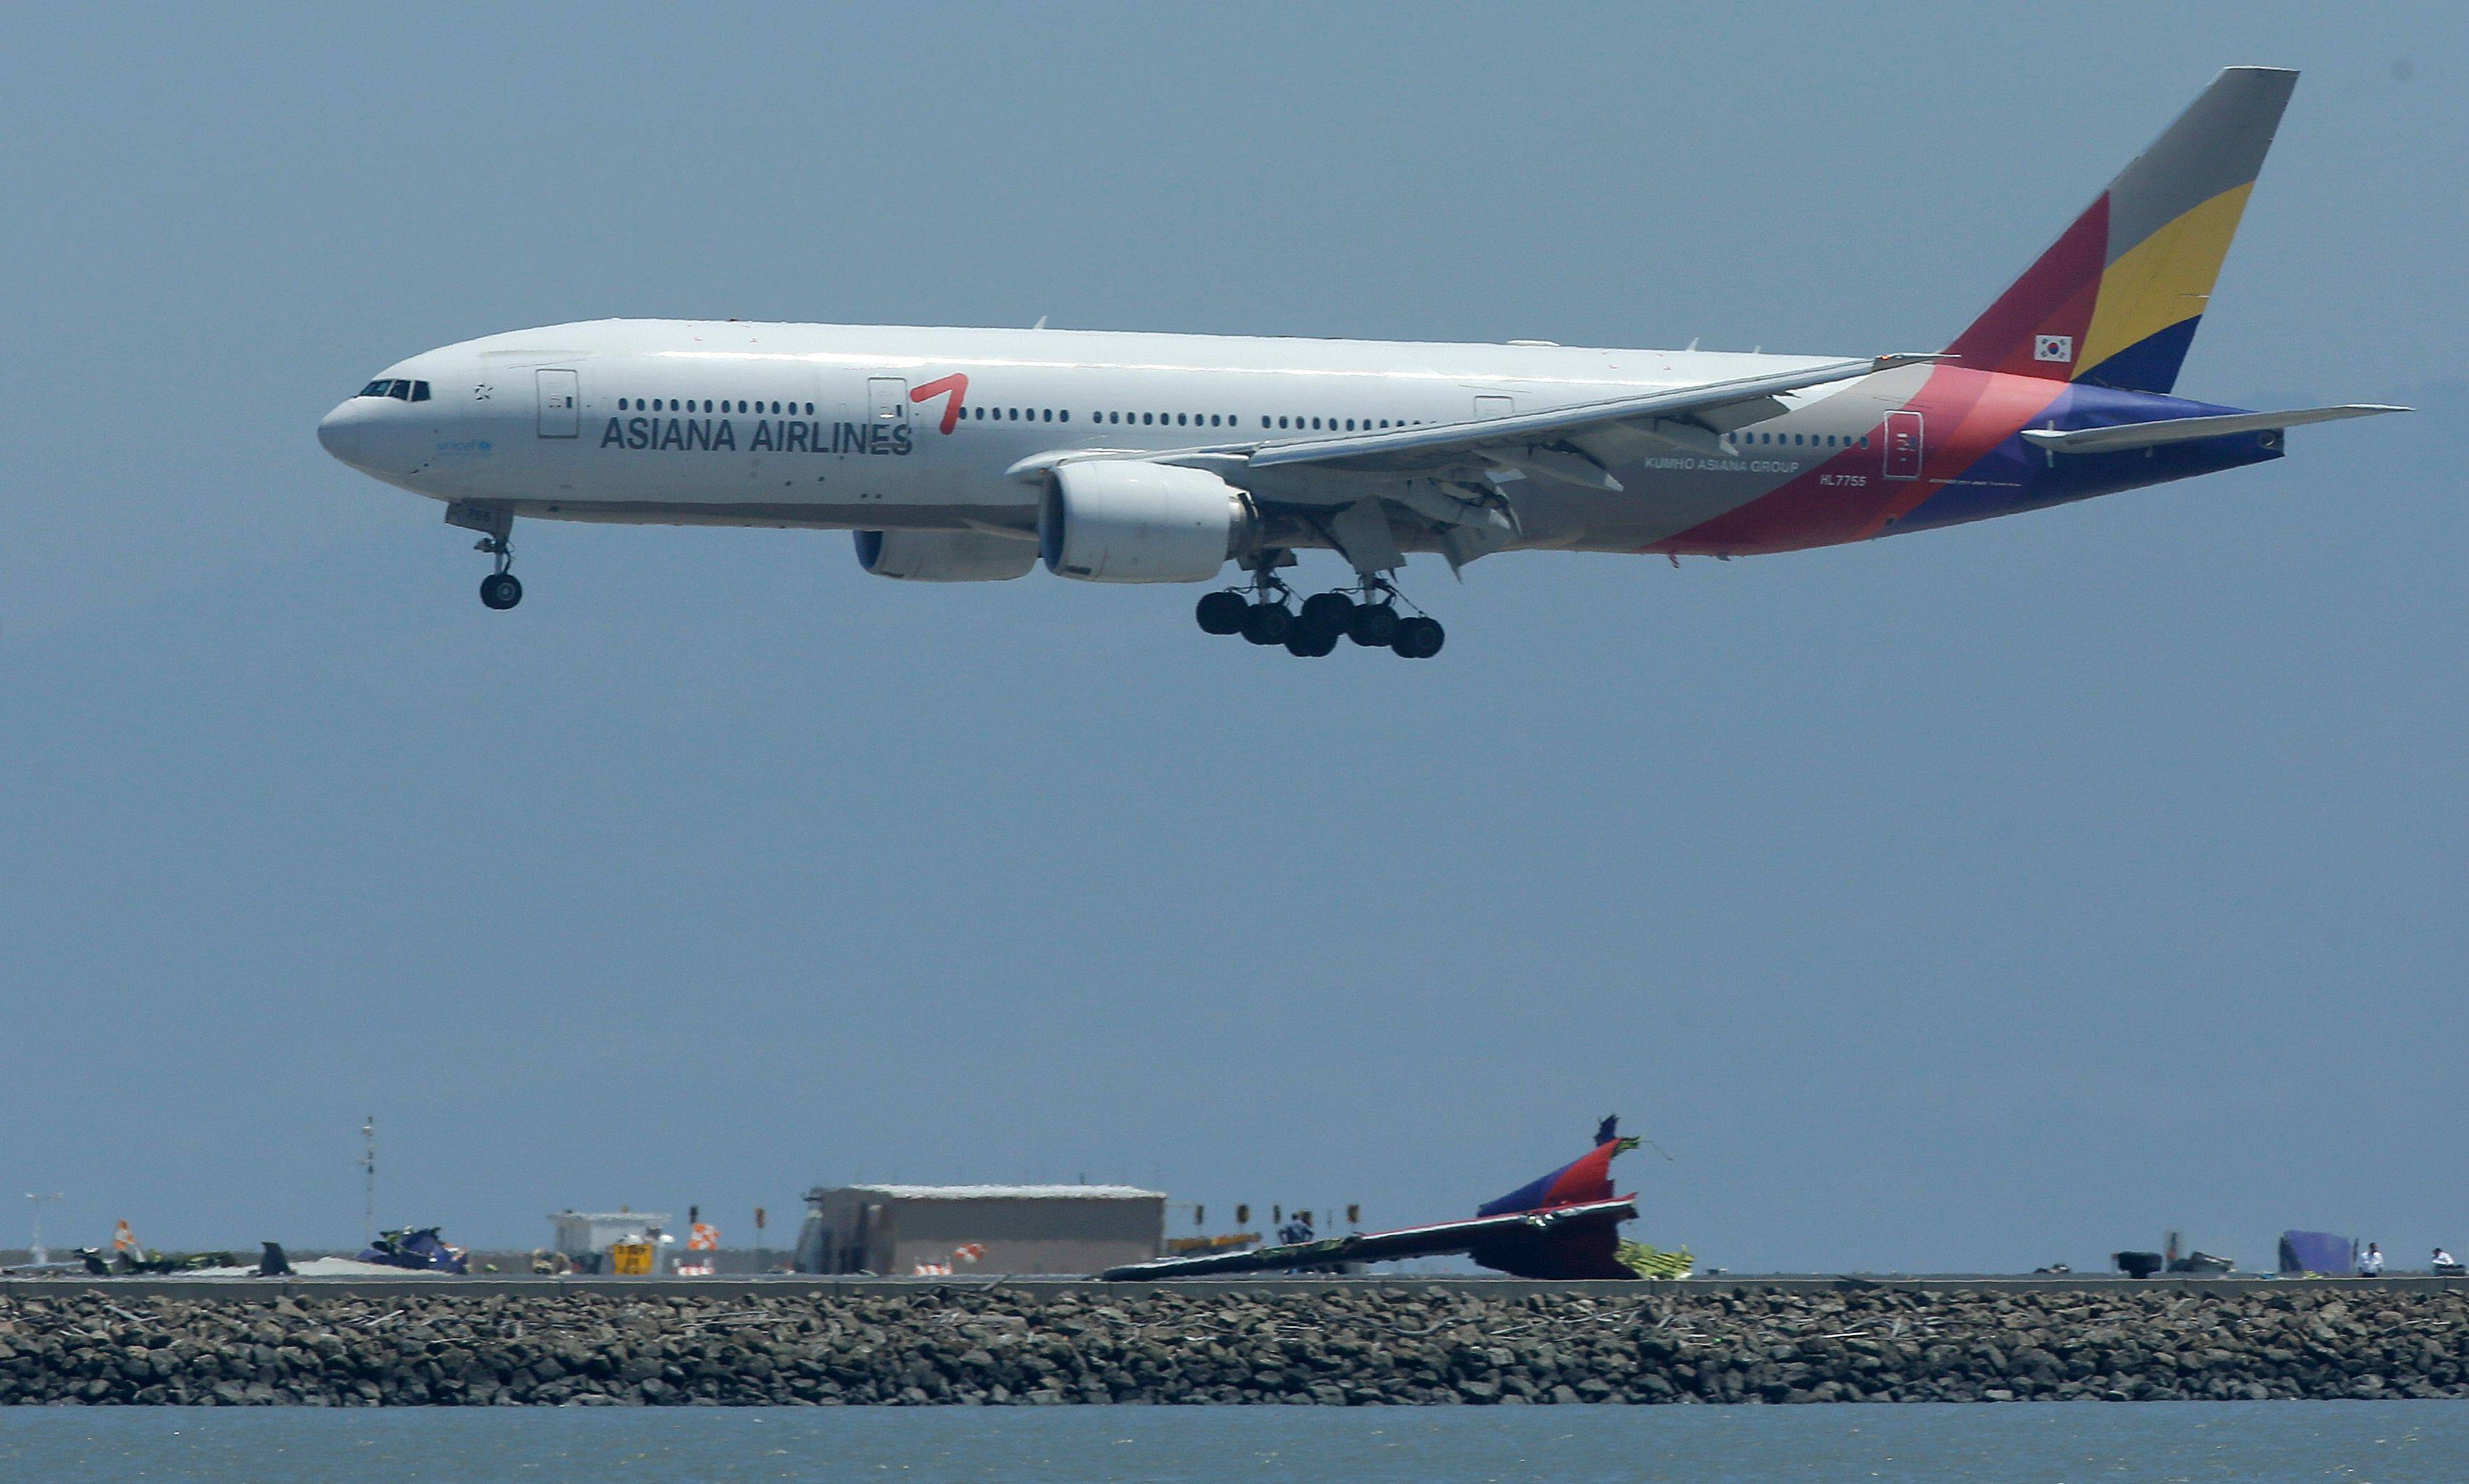 Tuesday's Asiana Flight 214 comes in for a landing over the wreckage of Saturday's Asiana Flight 214 at San Francisco International Airport.